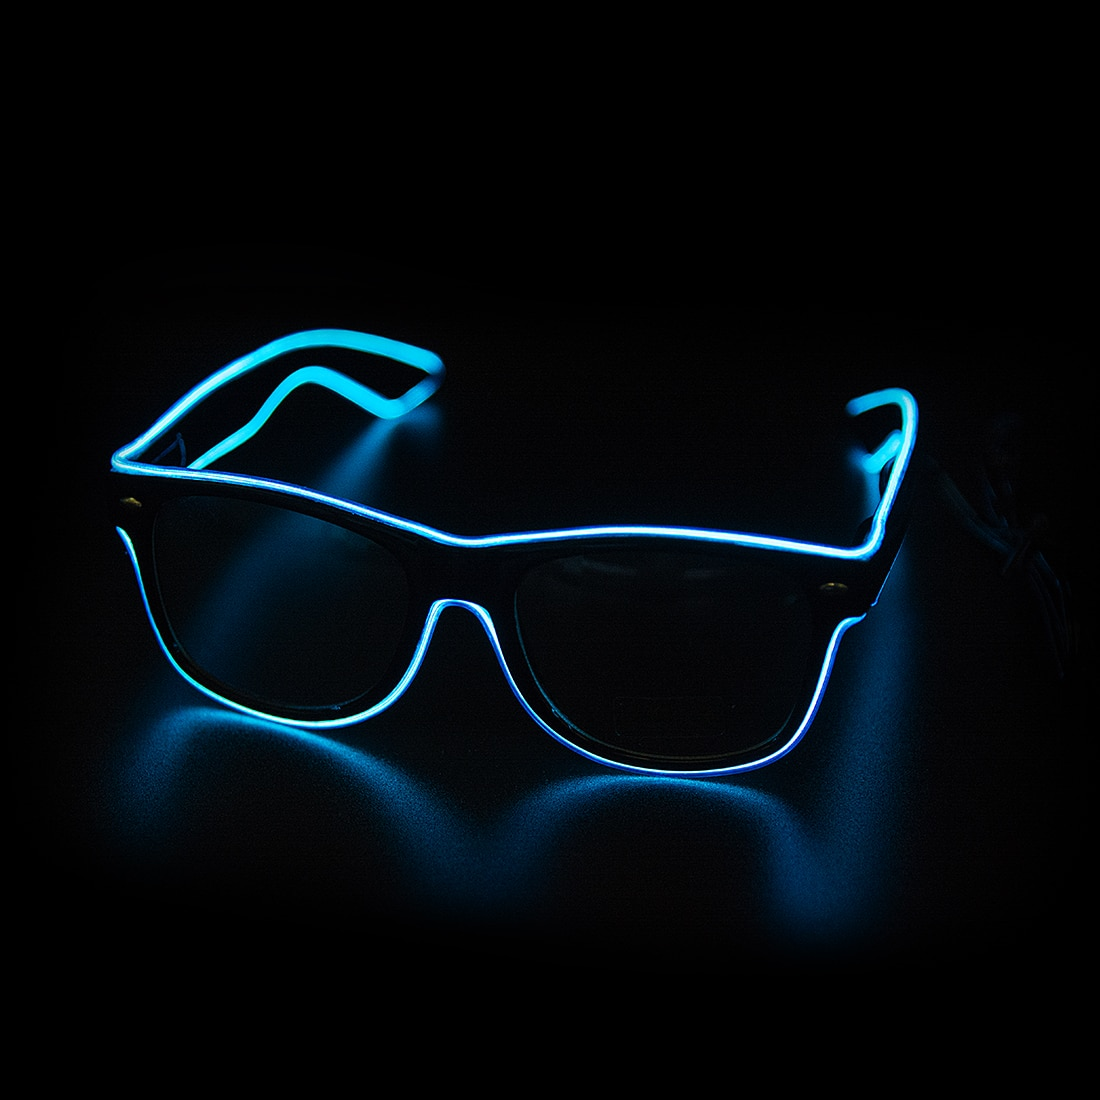 Led Glasses Neon Party Flashing Glasses EL Wire Glowing Gafas Luminous Bril Novelty Gift Glow Sungla